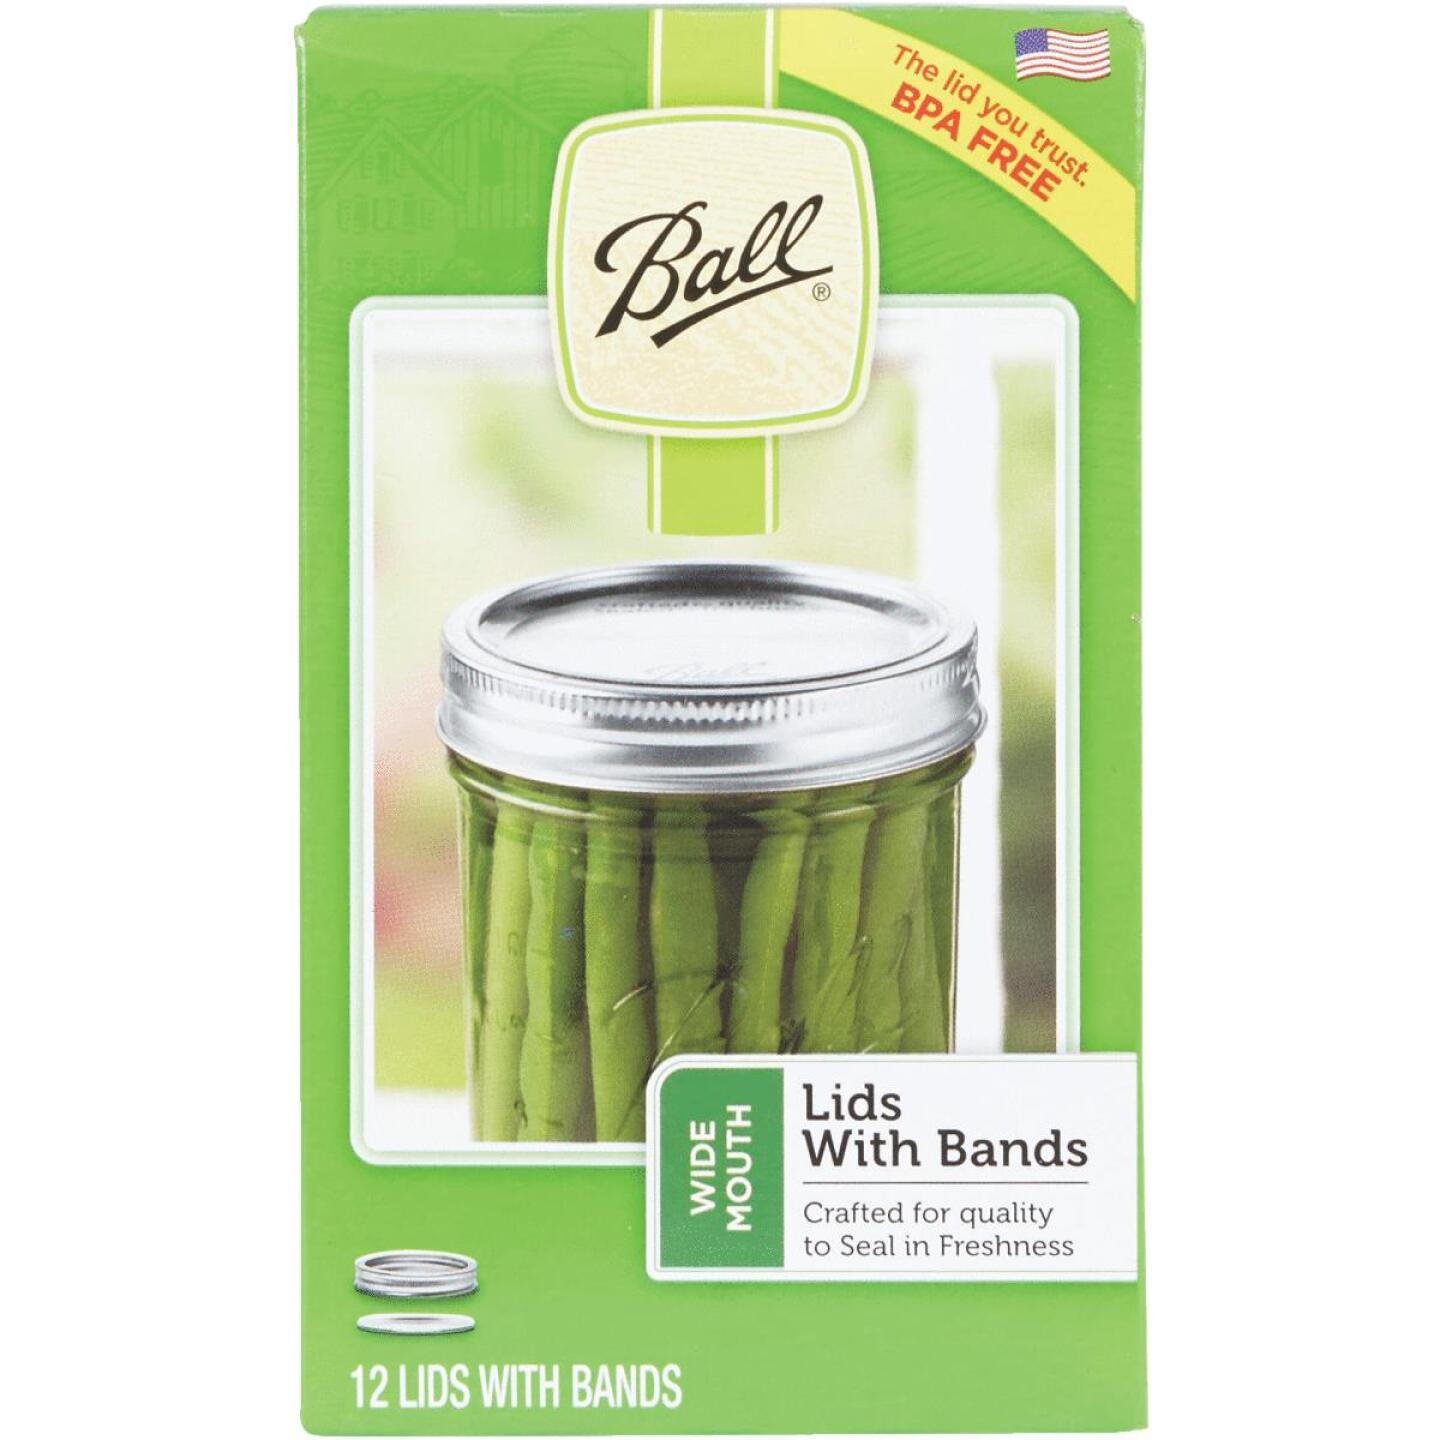 Ball Wide Mouth Dome Canning Lid with Band (12-Count) Image 2